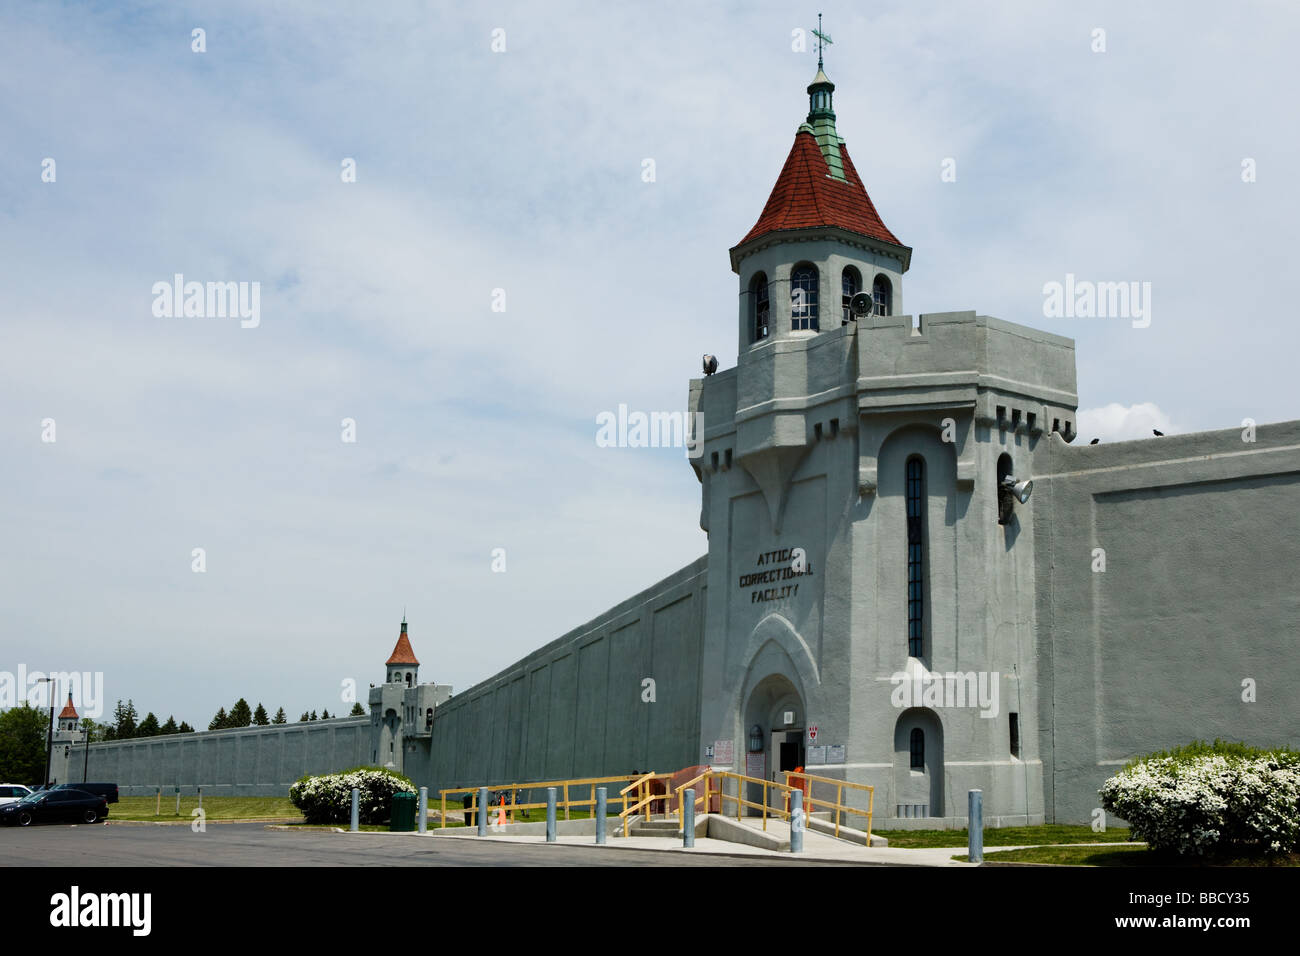 Attica Correctional Facility aka State Prison maximum security western New York Wyoming County site of infamous - Stock Image